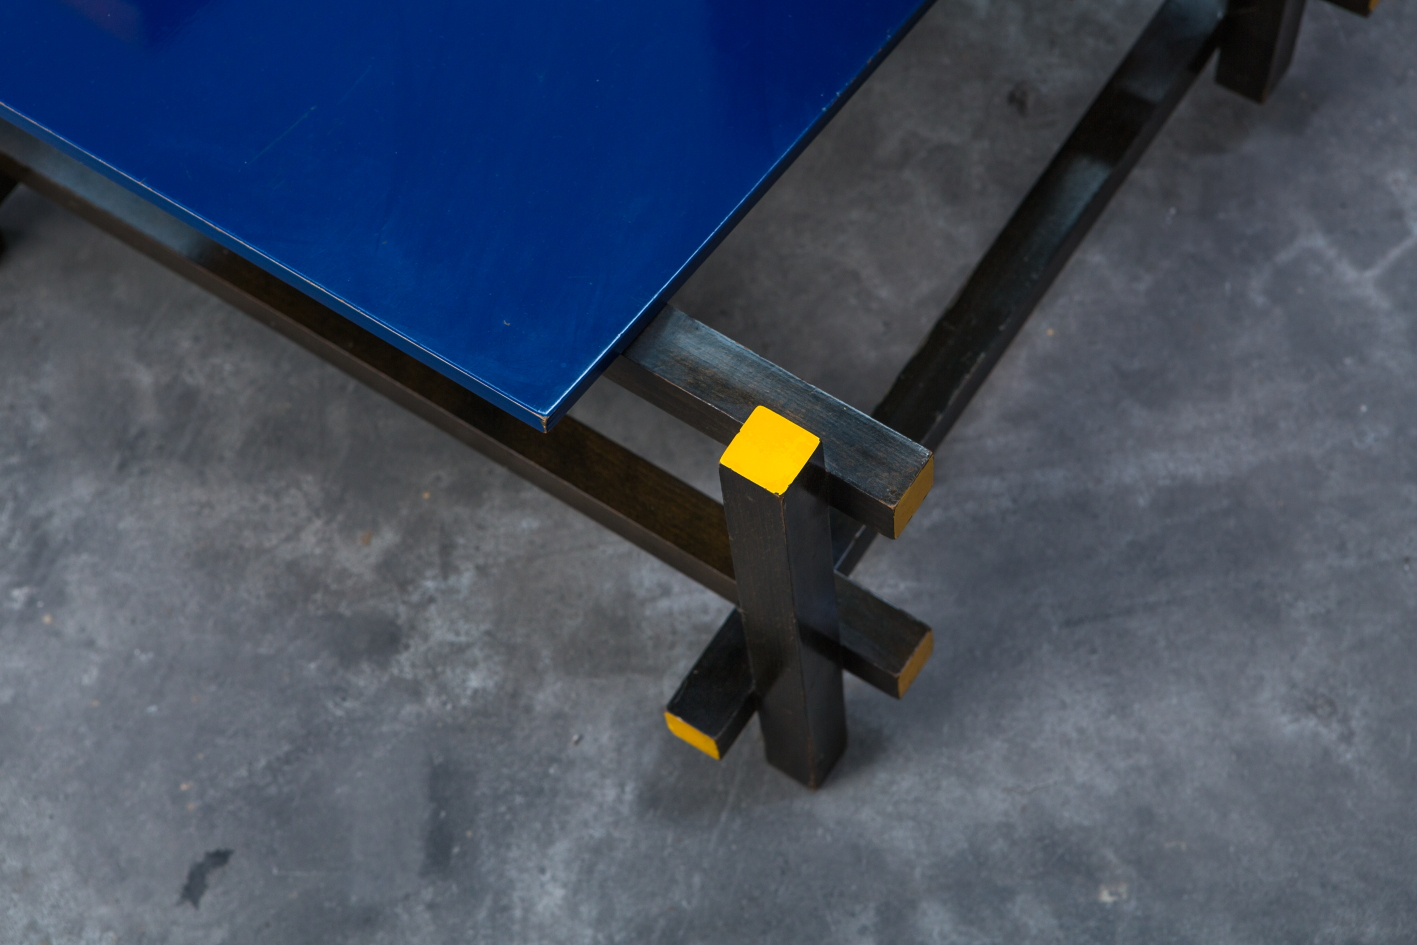 Early Red & Blue chair - Gerrit Rietveld for Cassina signed n.23 - Leg detail